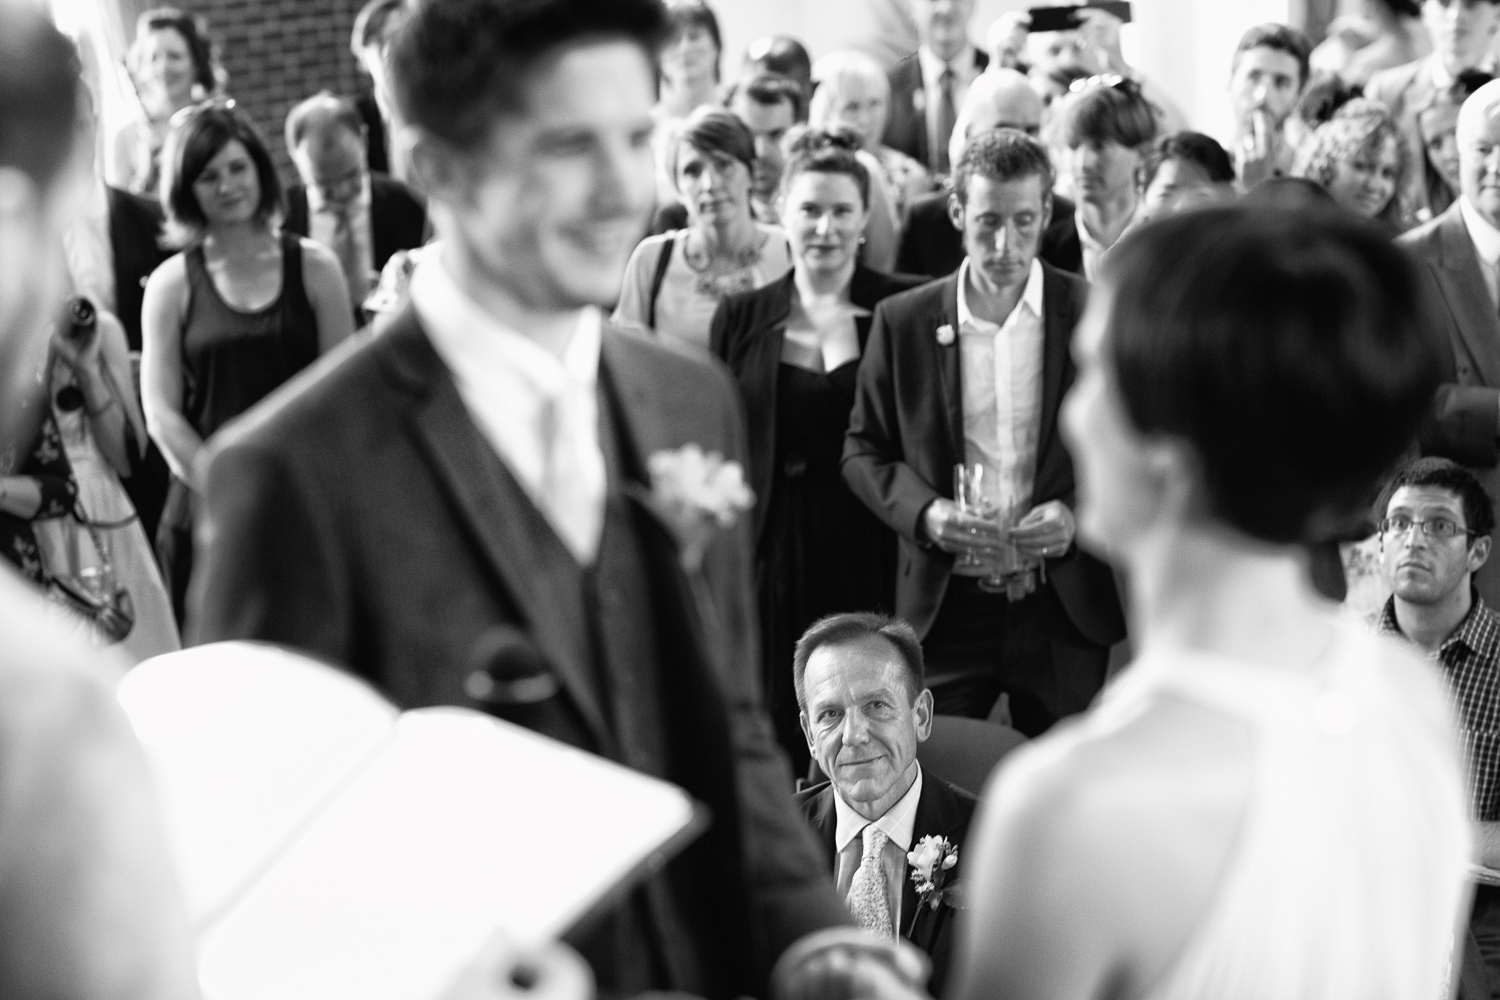 Wedding photography portfolio proud father watches daughter during marriage vows